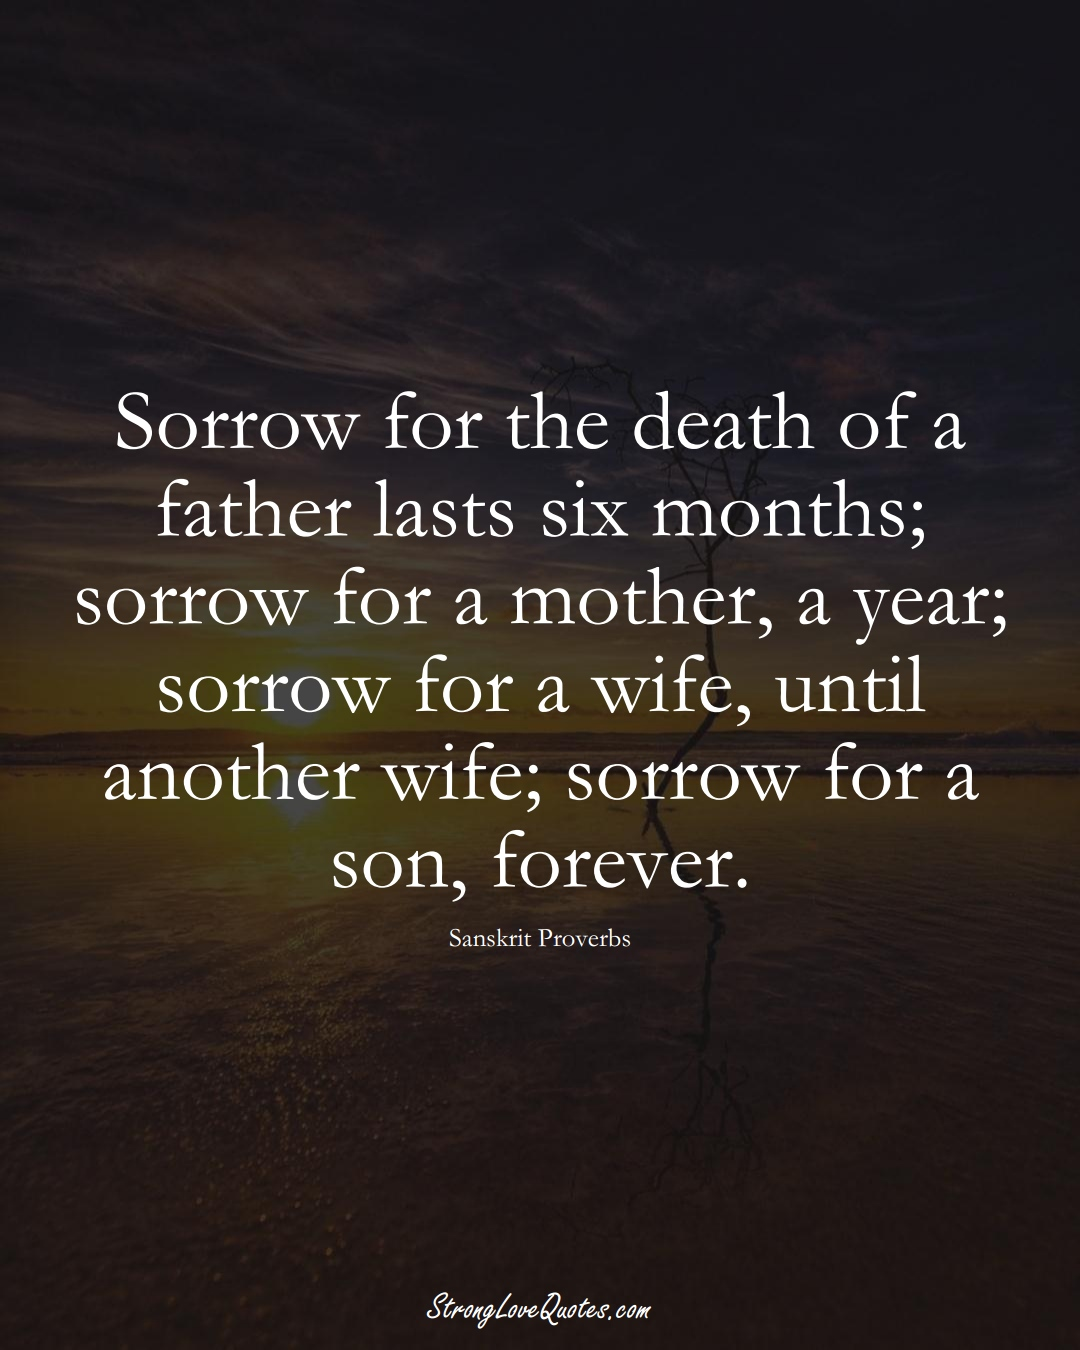 Sorrow for the death of a father lasts six months; sorrow for a mother, a year; sorrow for a wife, until another wife; sorrow for a son, forever. (Sanskrit Sayings);  #aVarietyofCulturesSayings